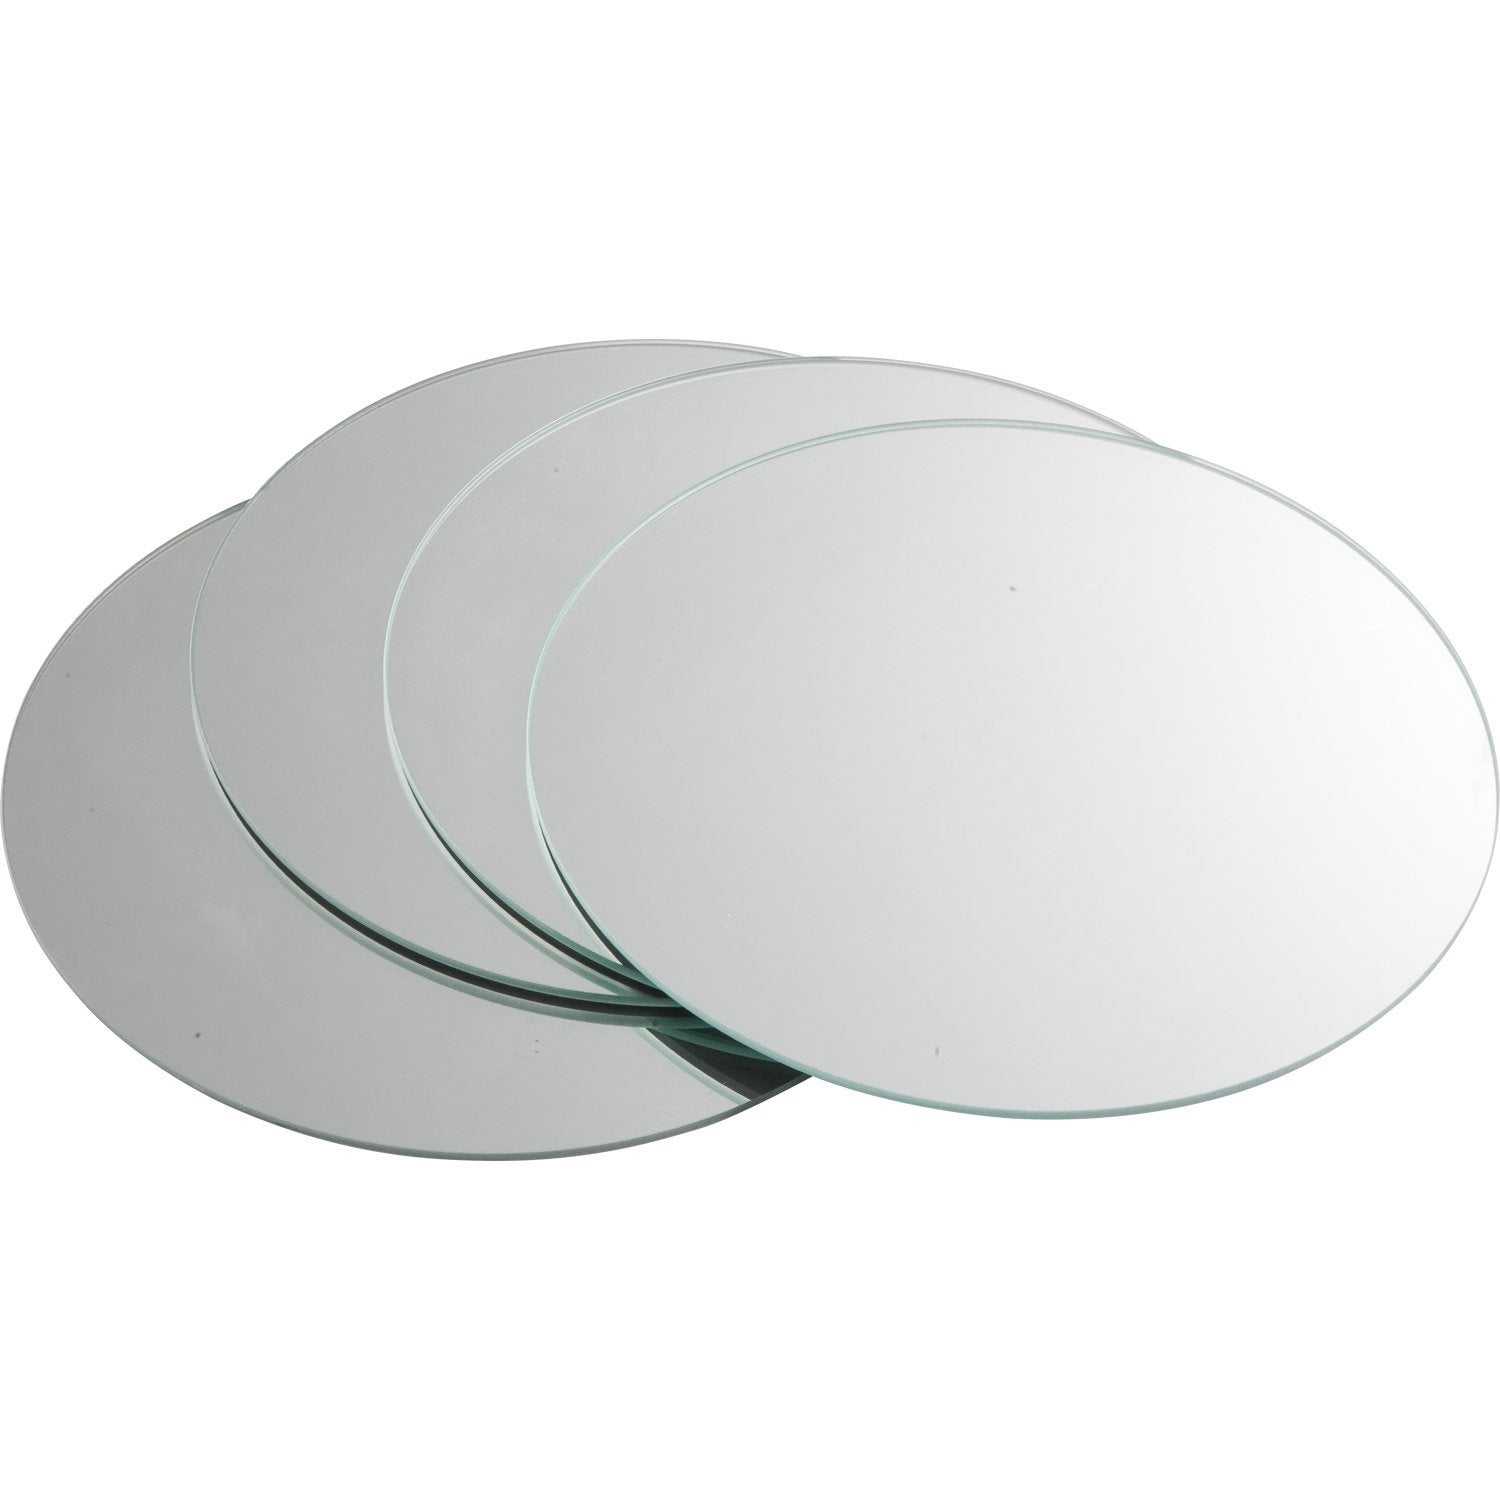 Lot de 4 miroirs non lumineux adh sifs ronds x cm leroy merlin for Petits miroirs ronds